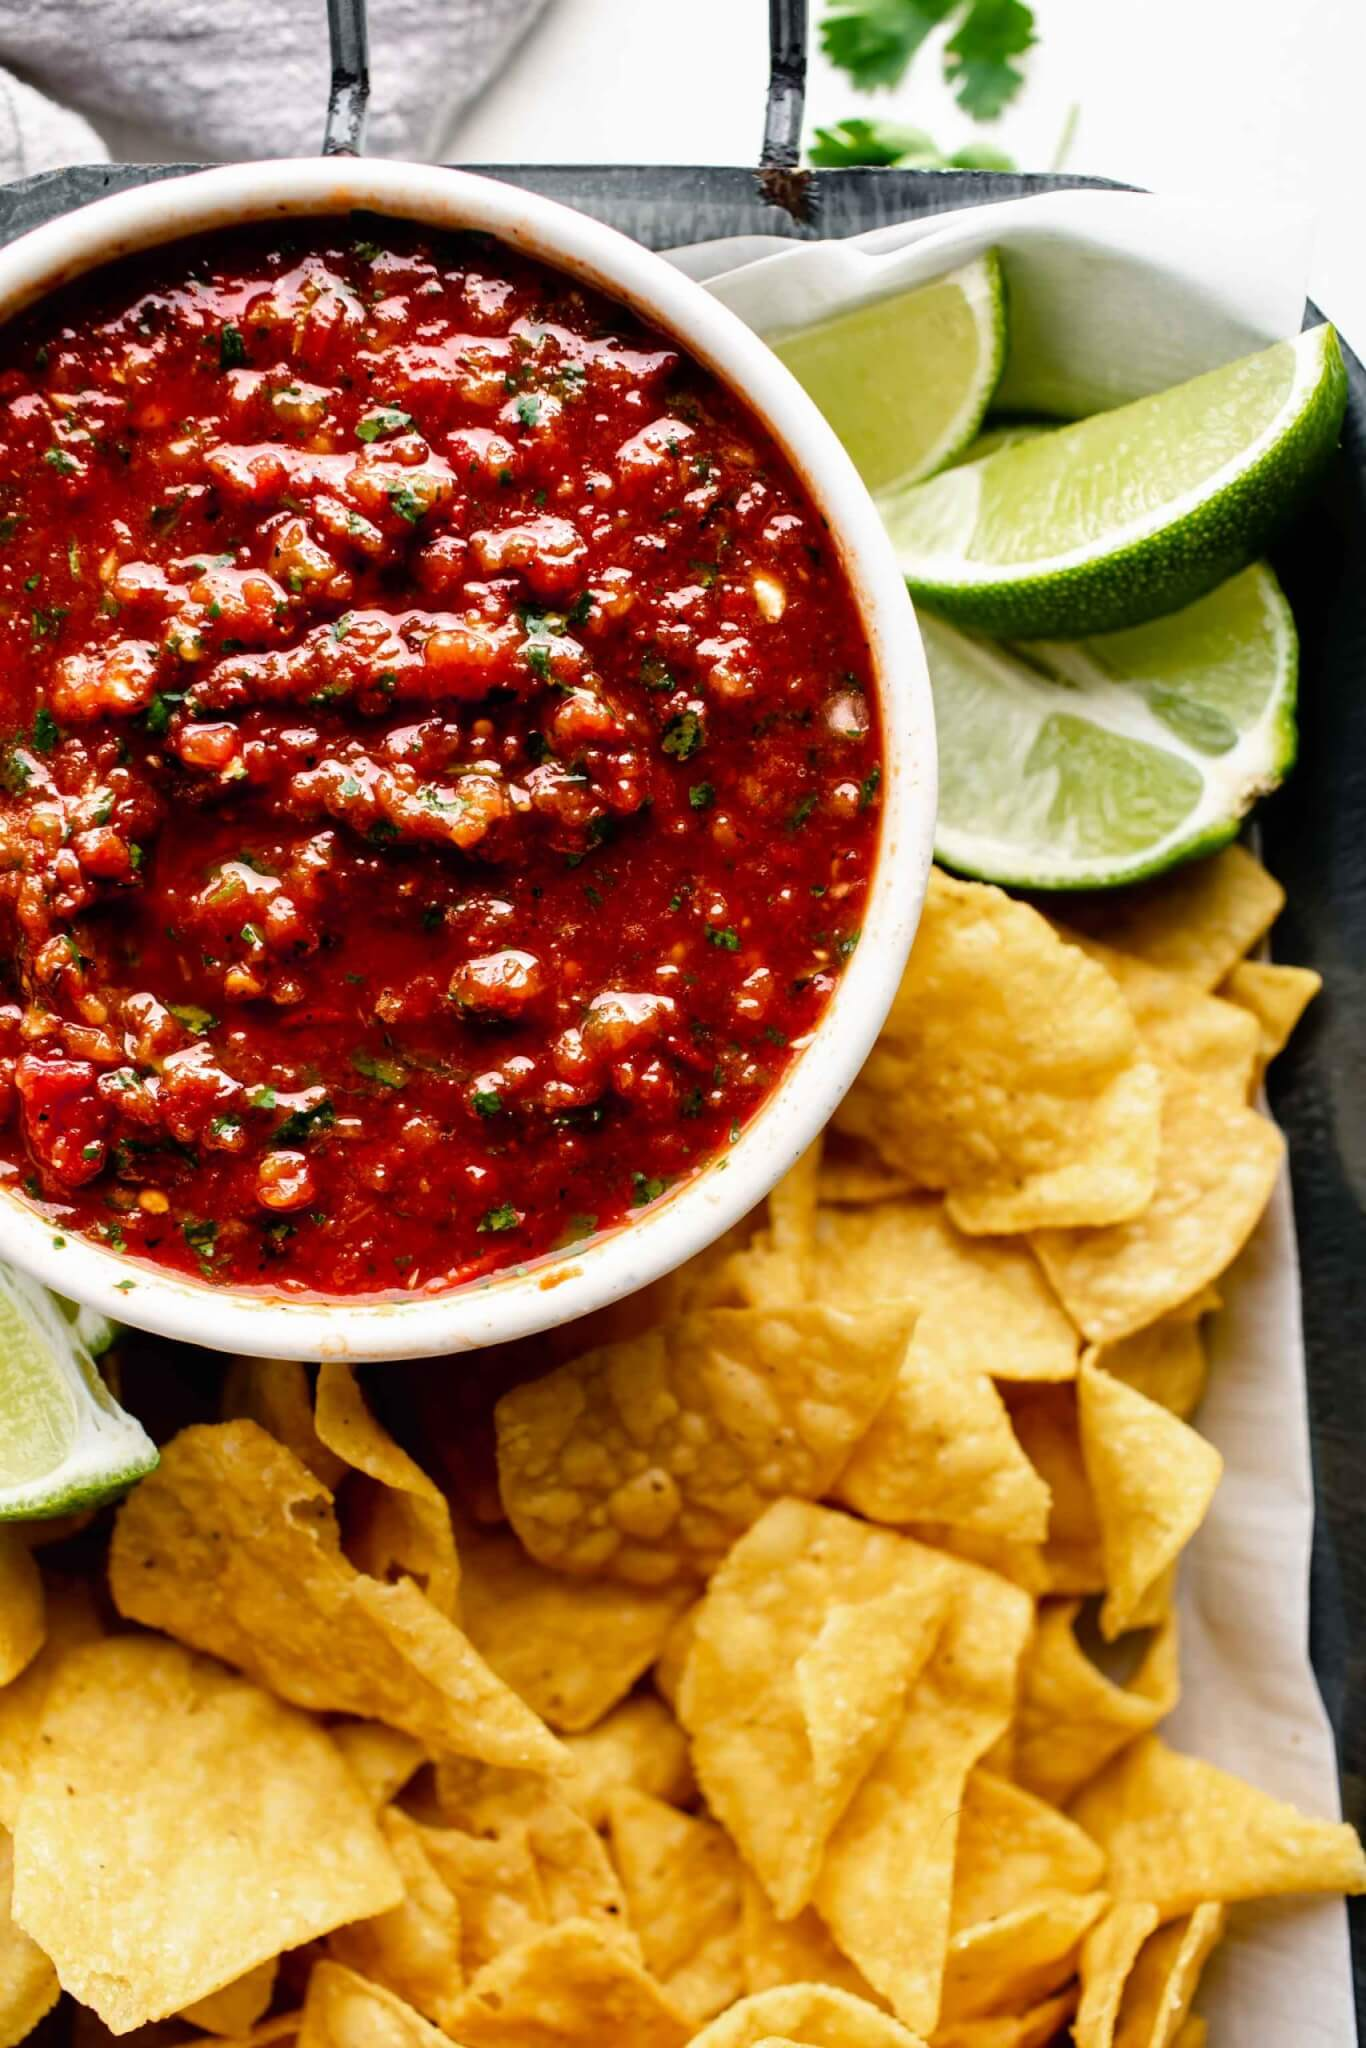 Bowl of chipotle salsa in serving tray with chips and limes.